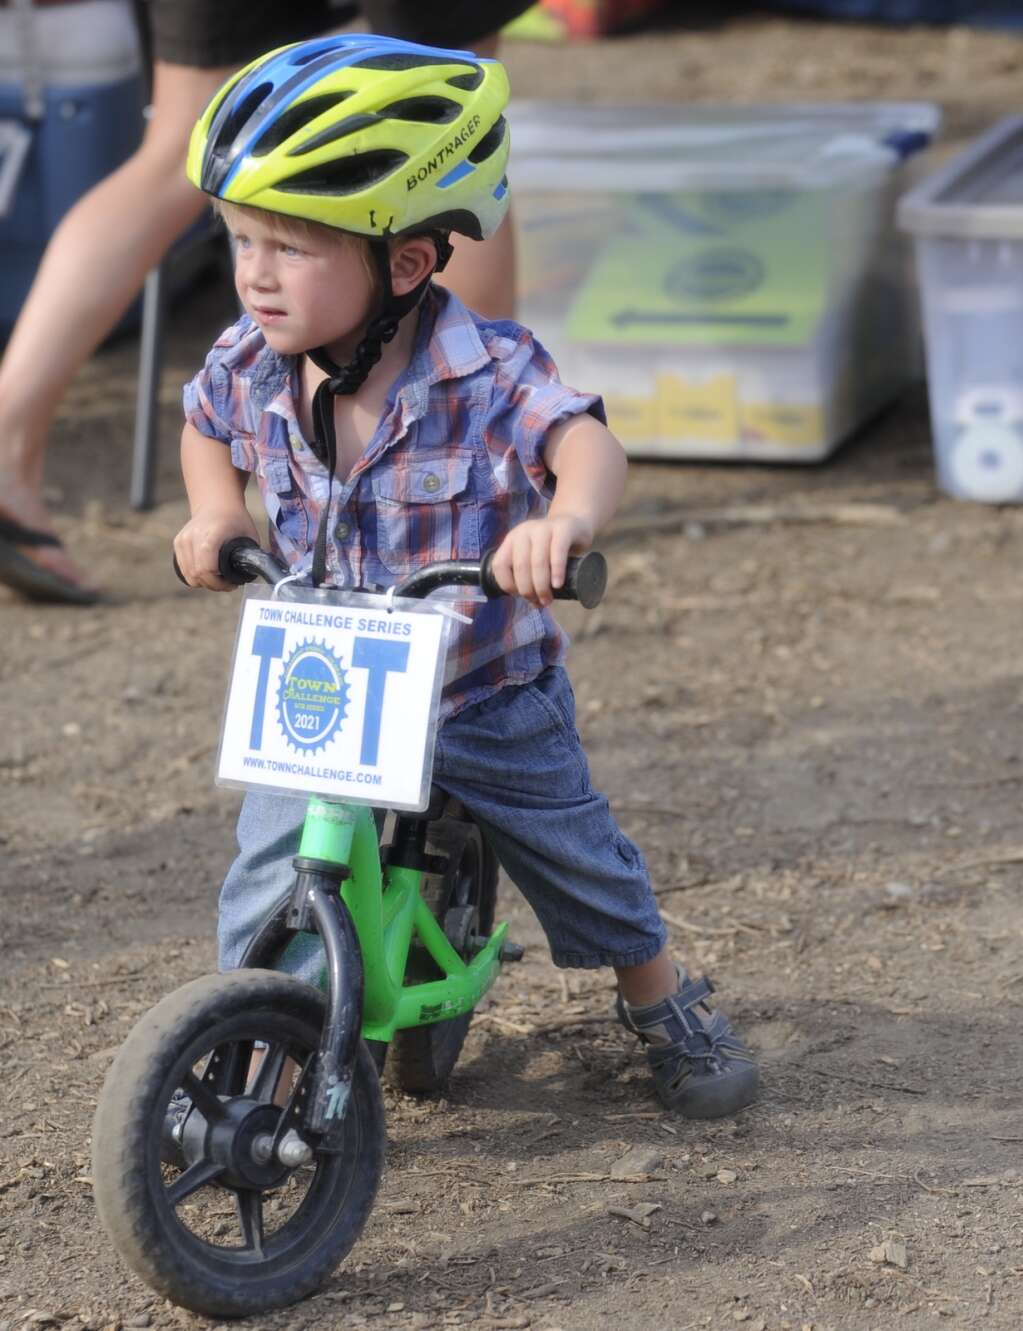 A Tot rider watches races from his bike at the Town Challenge Emerald Endurance race on Wednesday evening. (Photo by Shelby Reardon)